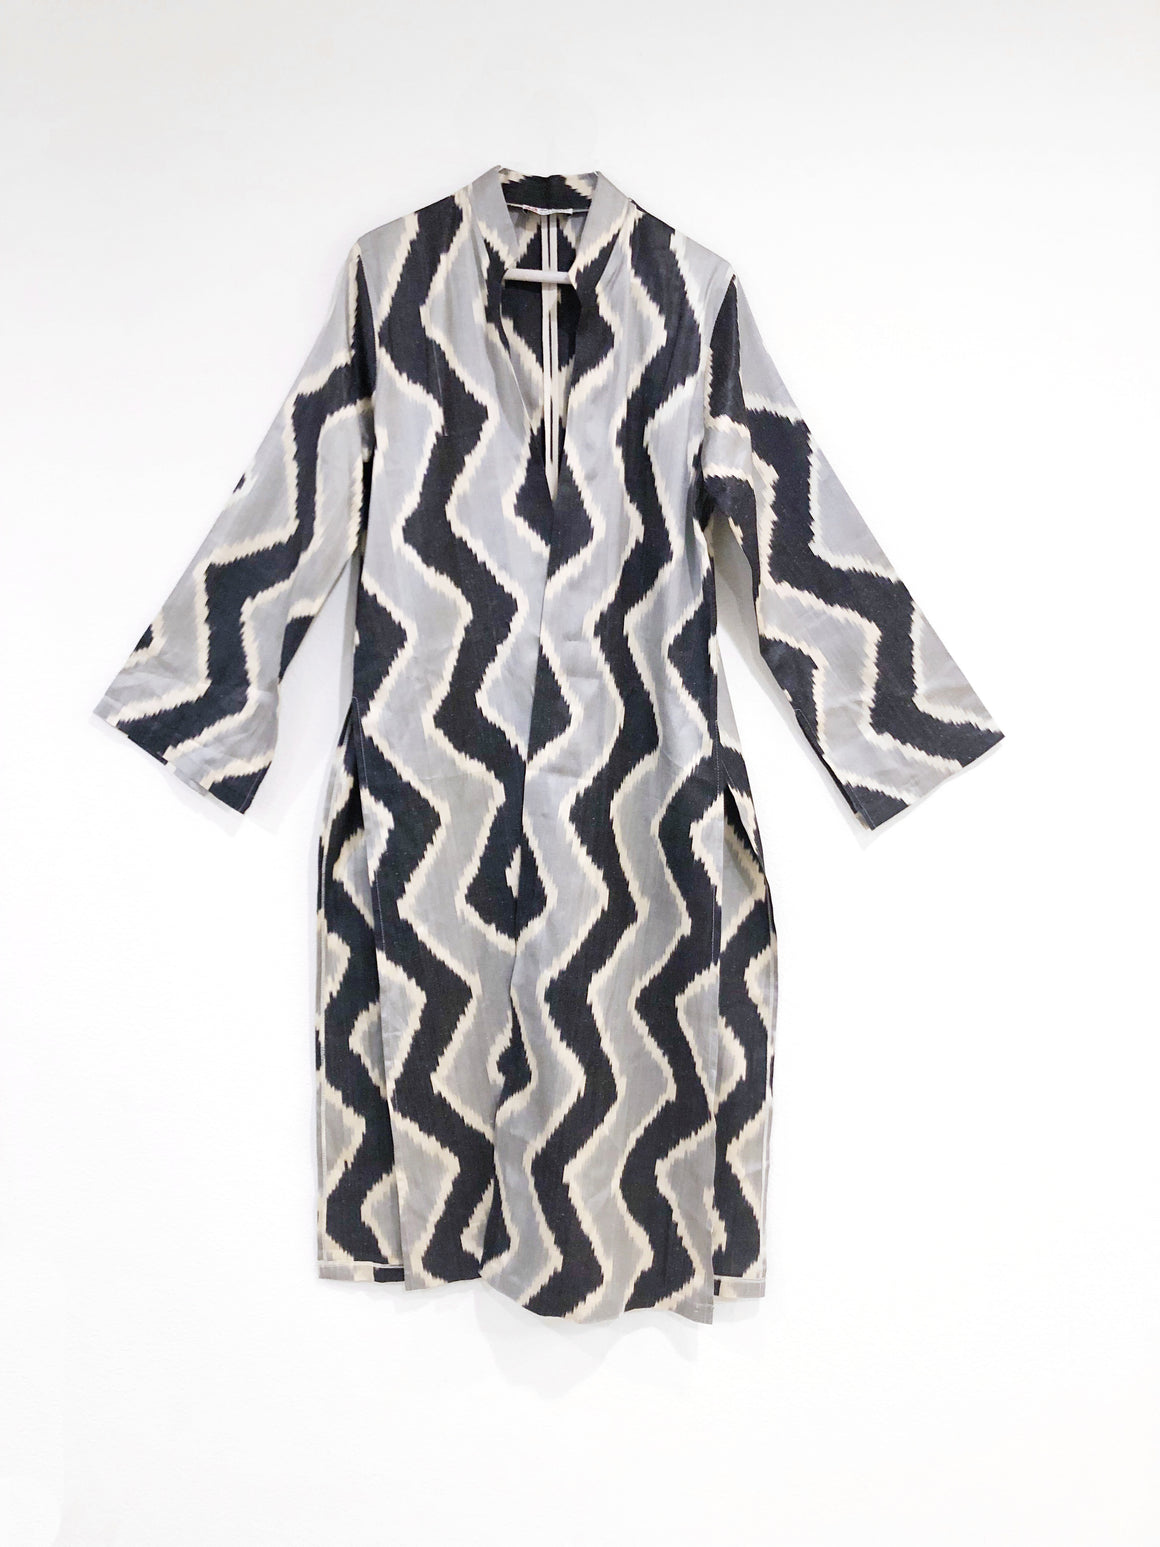 Desert Kaftan Robe - Small/Medium